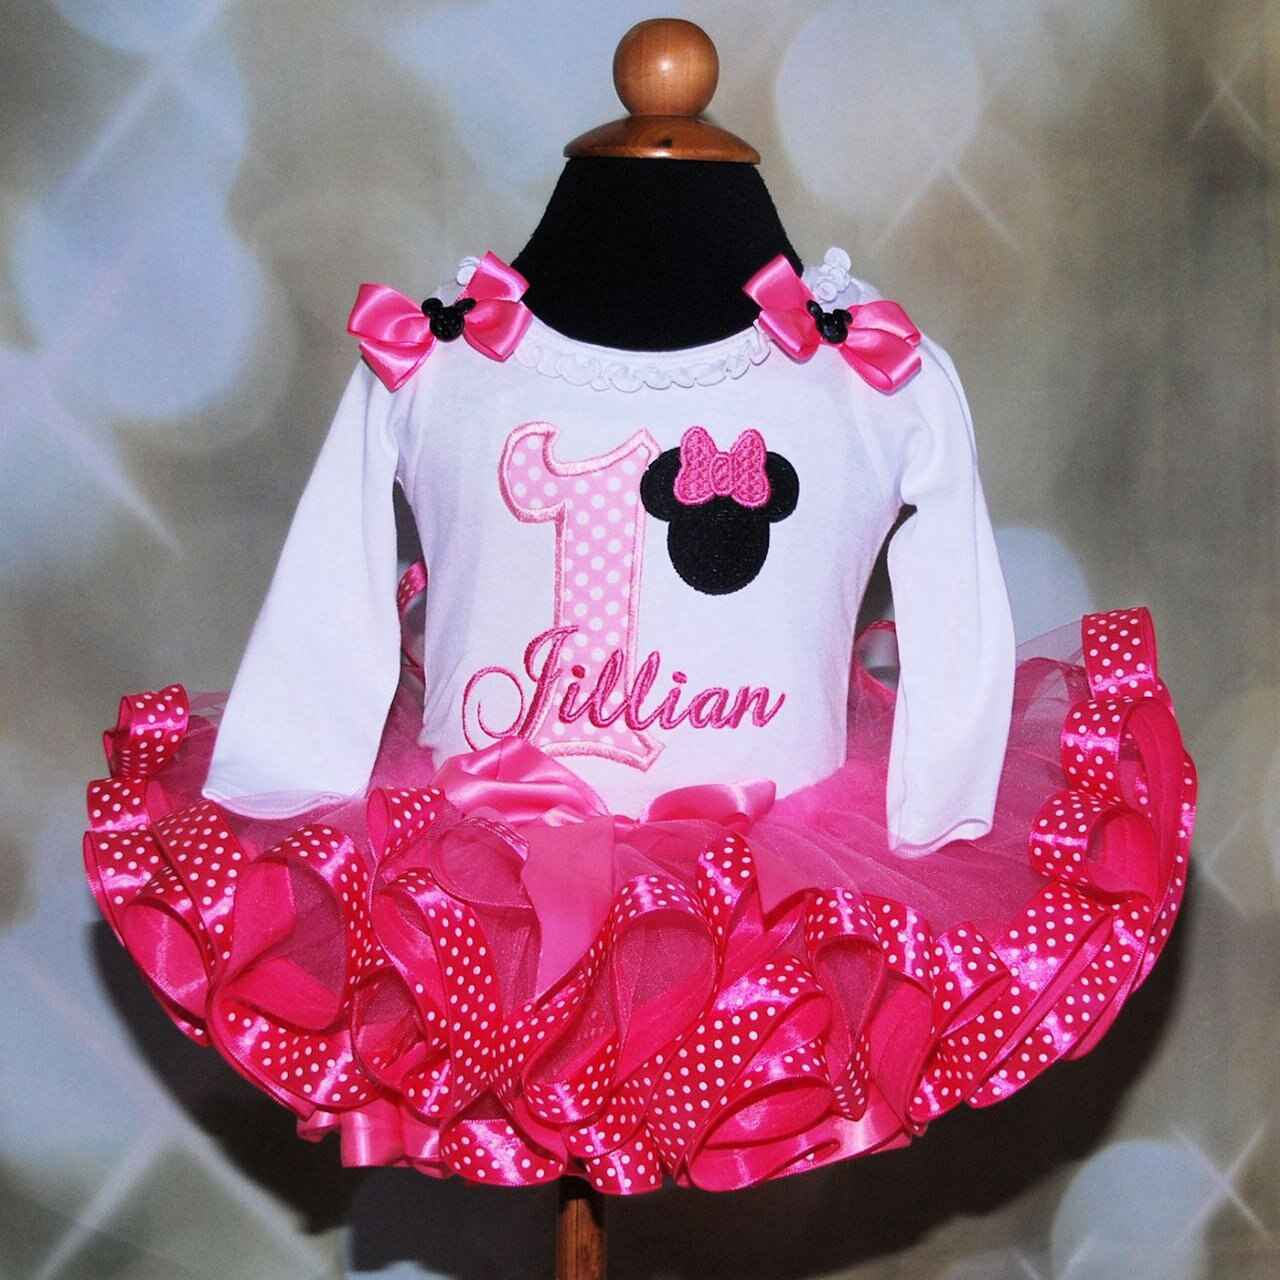 Minnie Mouse birthday tutu outfit glitter birthday ,dress 2nd birthday tutu outfit, ribbon trim tutu, second birthday girl outfit, tutu dress